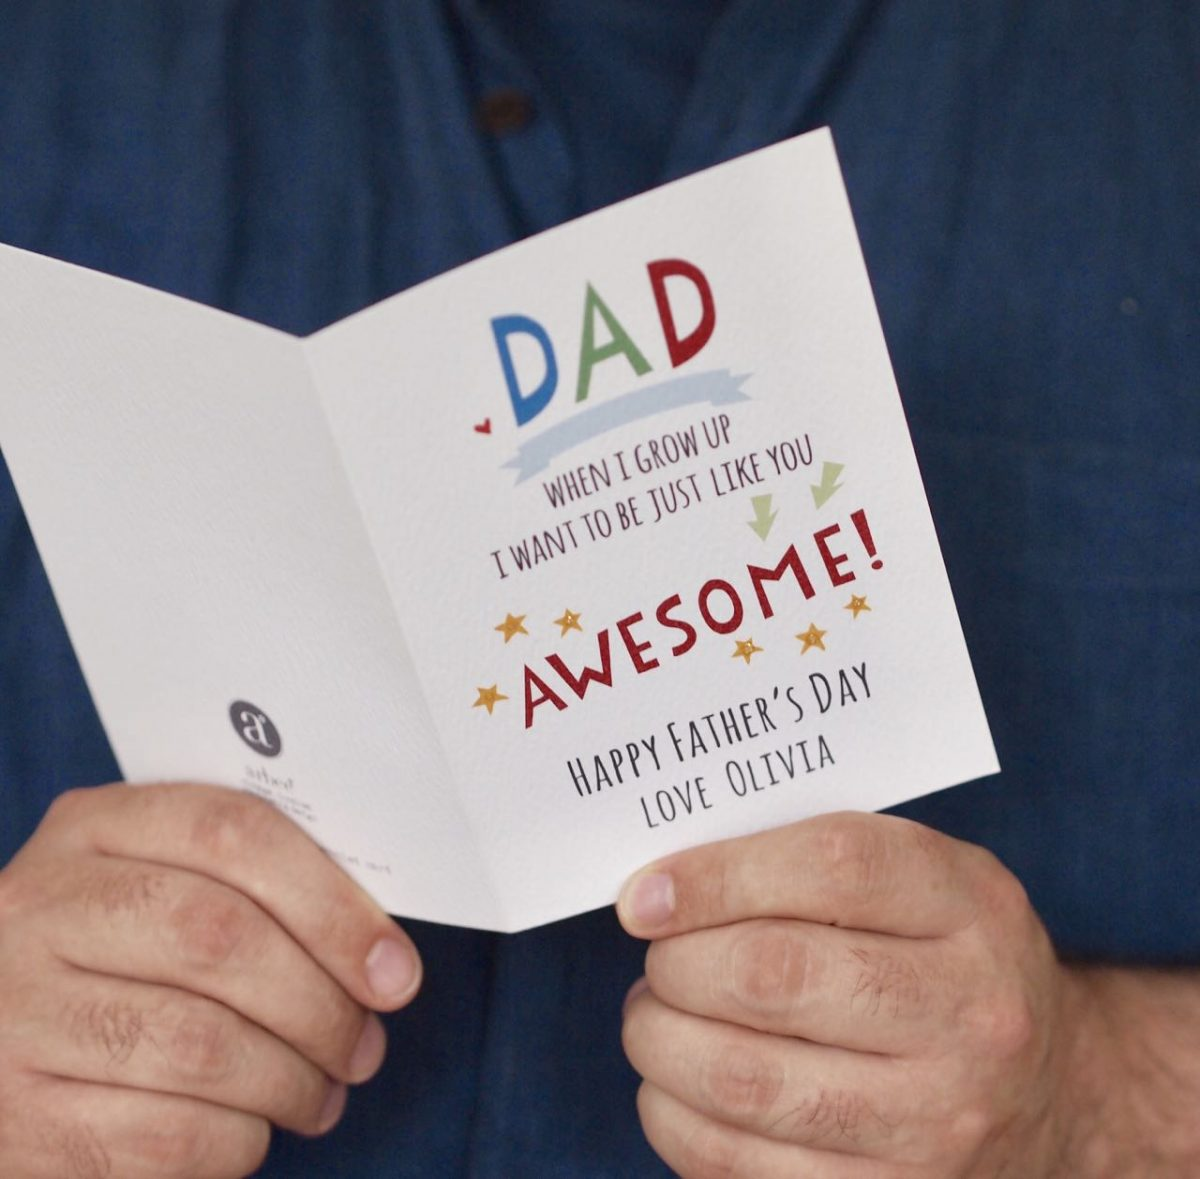 Celebrate the fab dads!